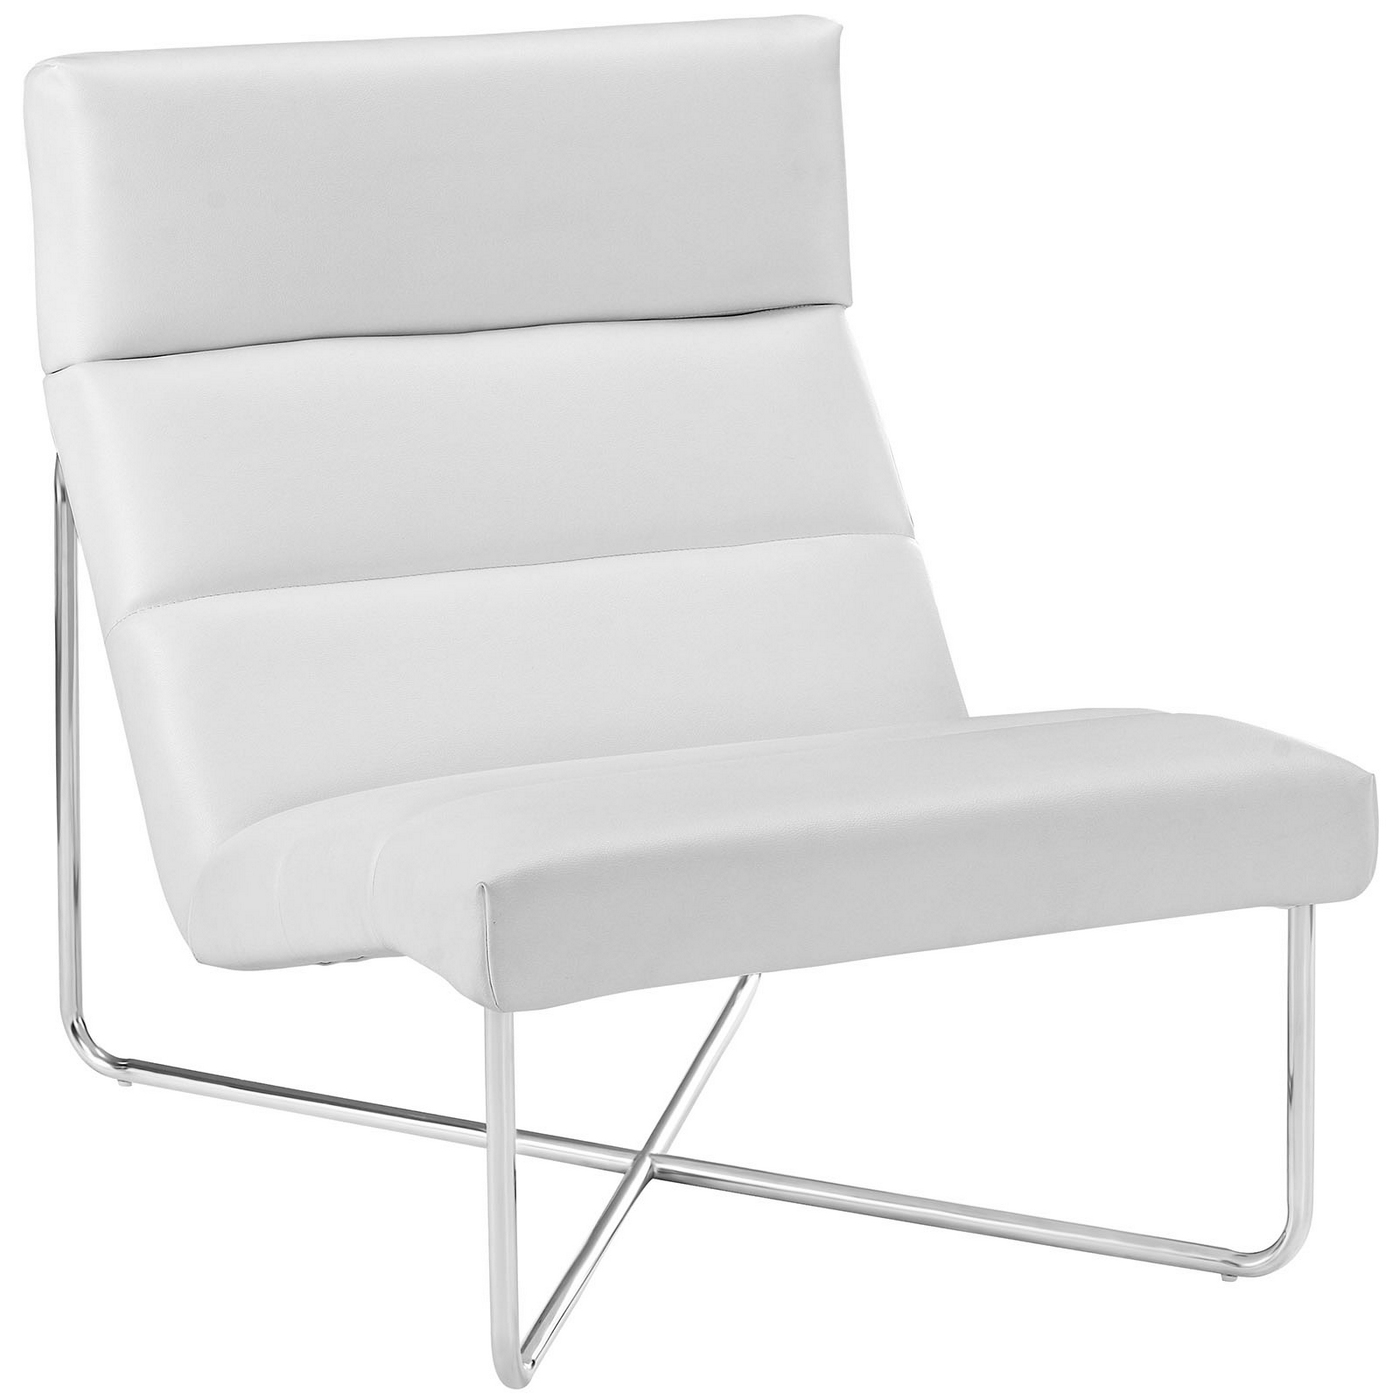 White Lounge Chairs Reach Channel Tufted Vinyl Lounge Chair With Chrome Base